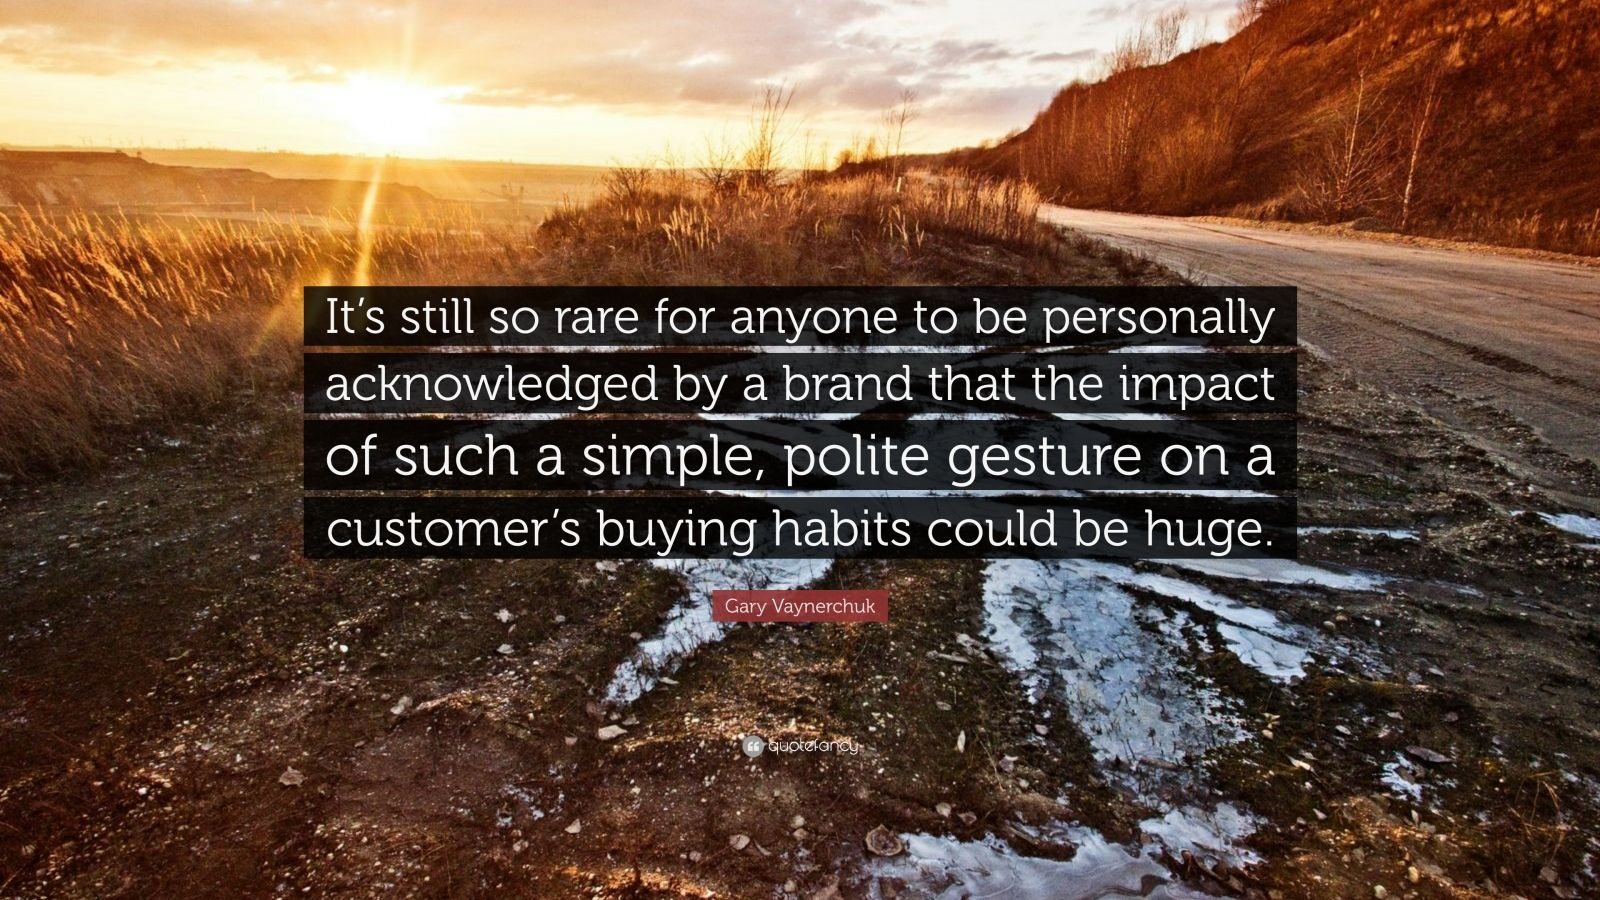 """Gary Vaynerchuk Quote: """"It's still so rare for anyone to be personally acknowledged by a brand that the impact of such a simple, polite gesture on a customer's buying habits could be huge."""""""